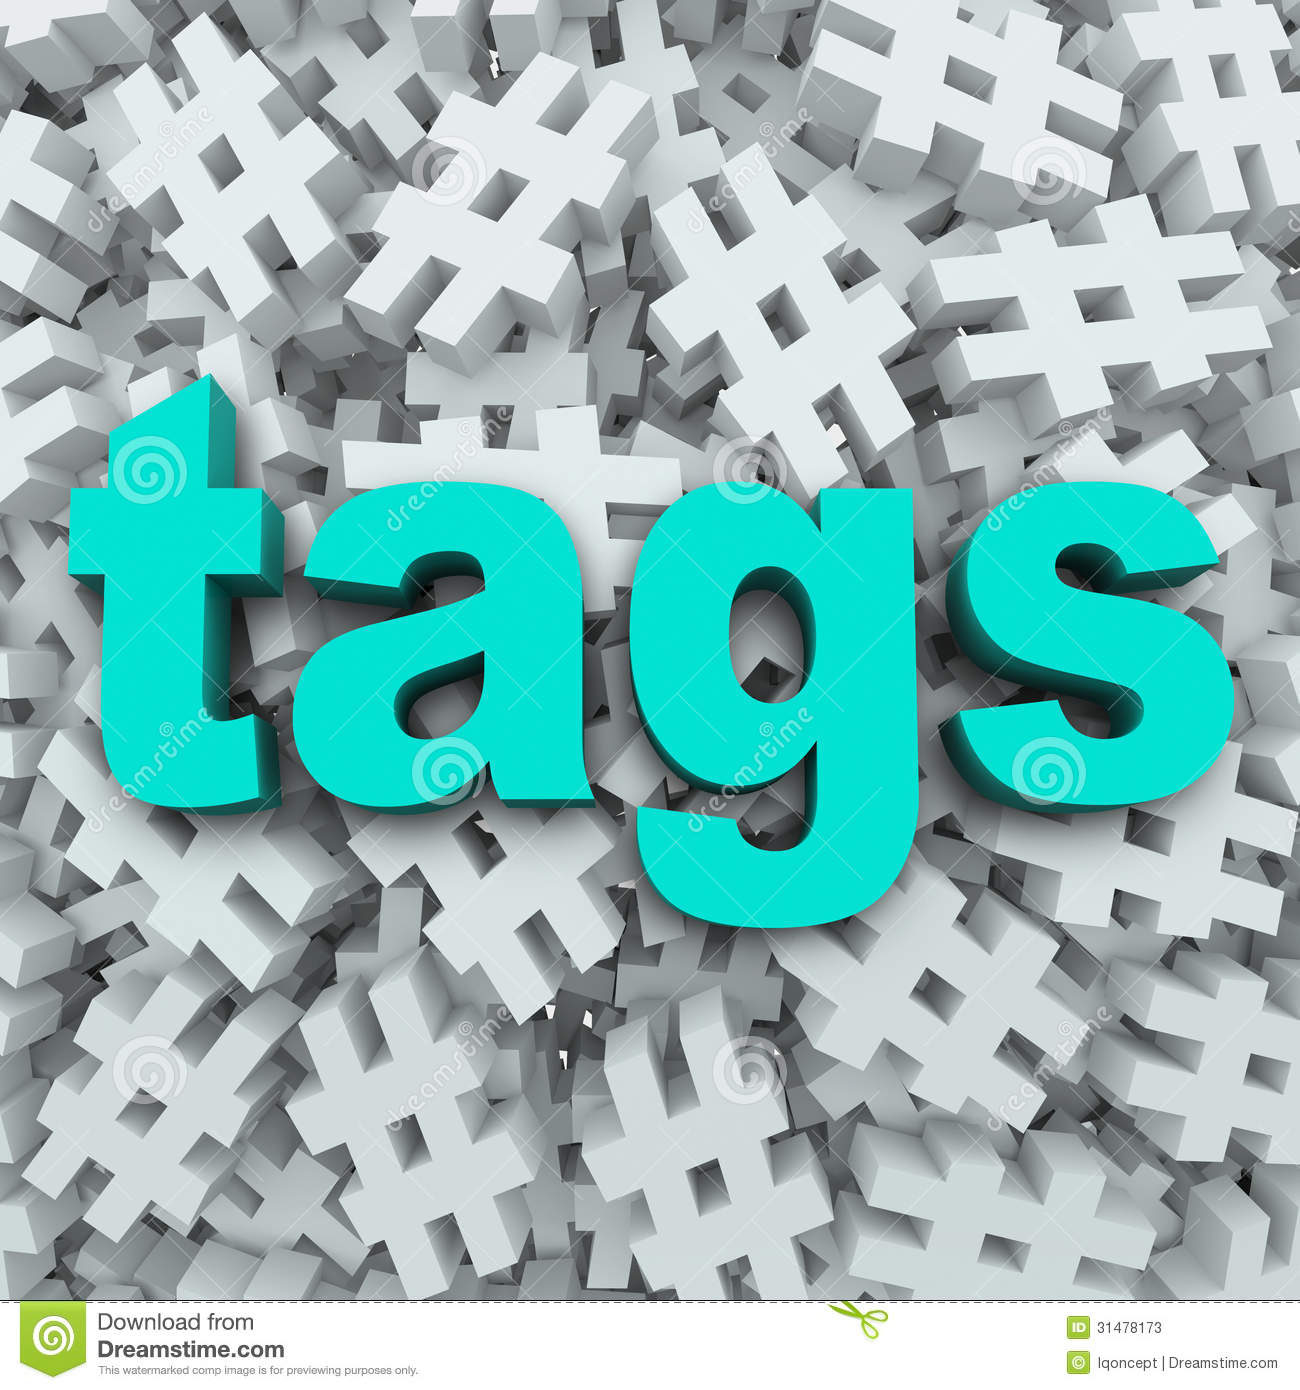 Updates News: Tags Hashtag Symbol Message Update Background Stock Photos